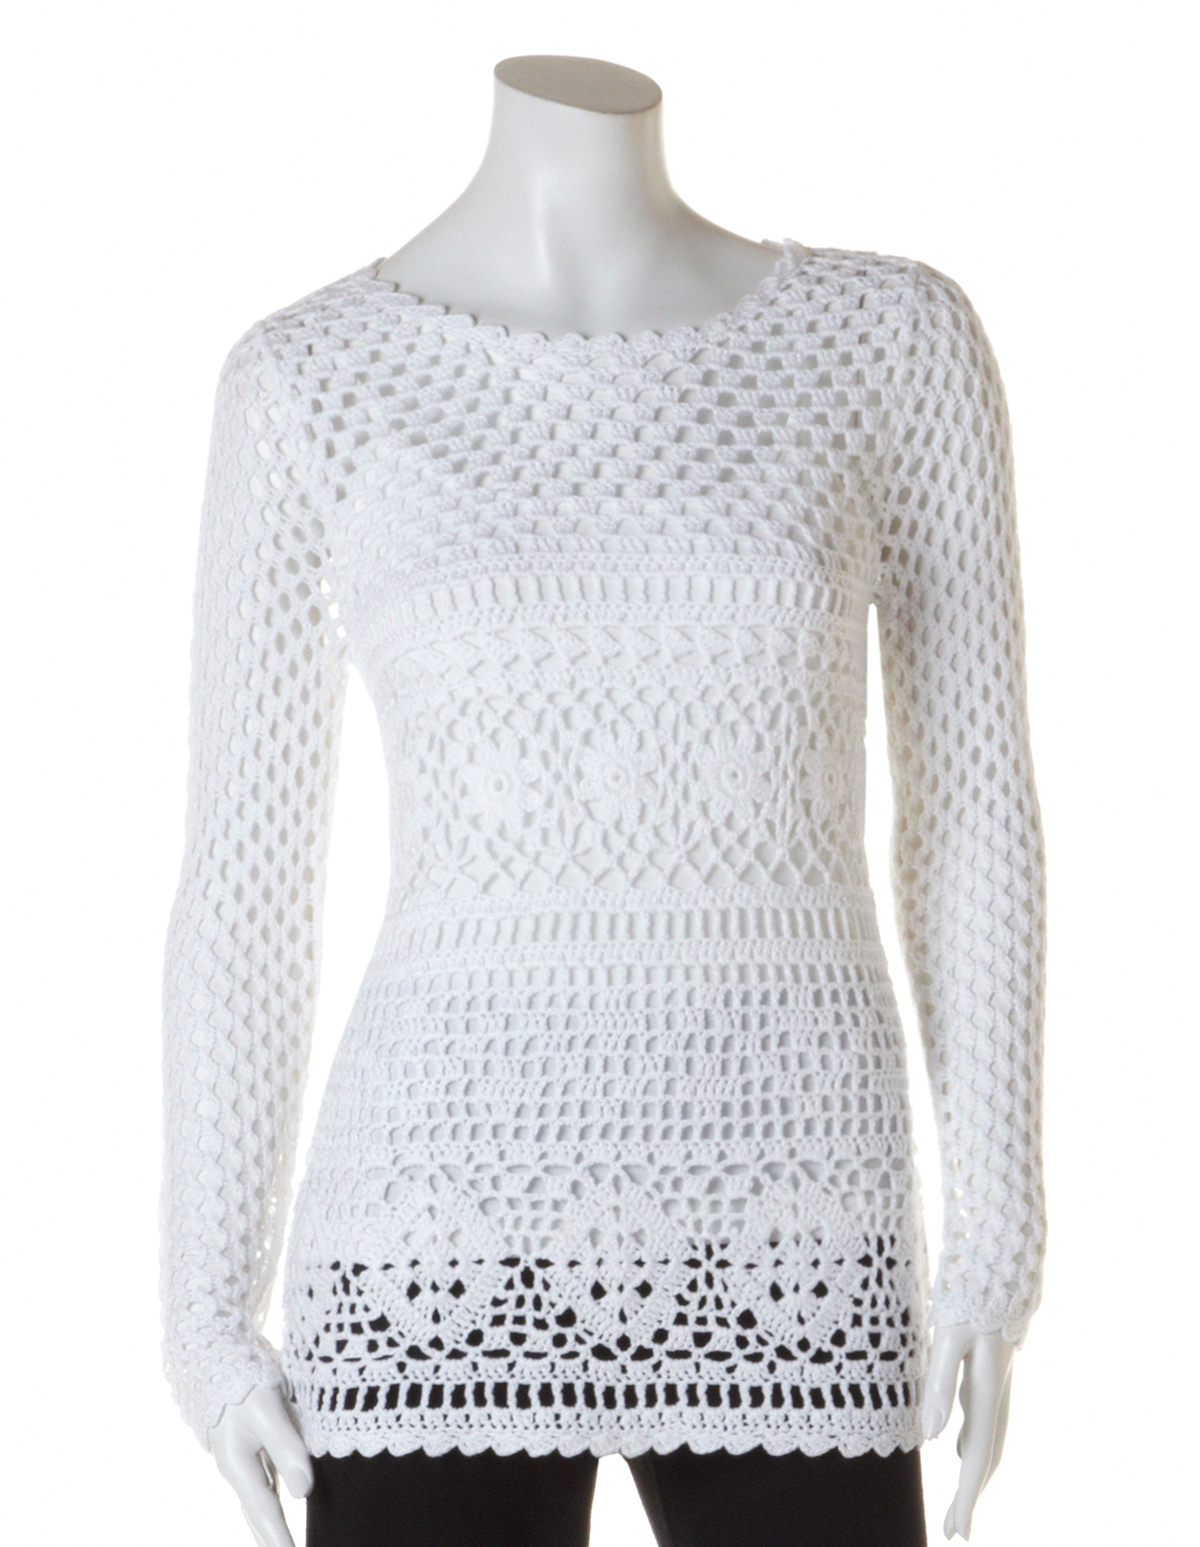 White Crochet Pullover Sweater | Cleo